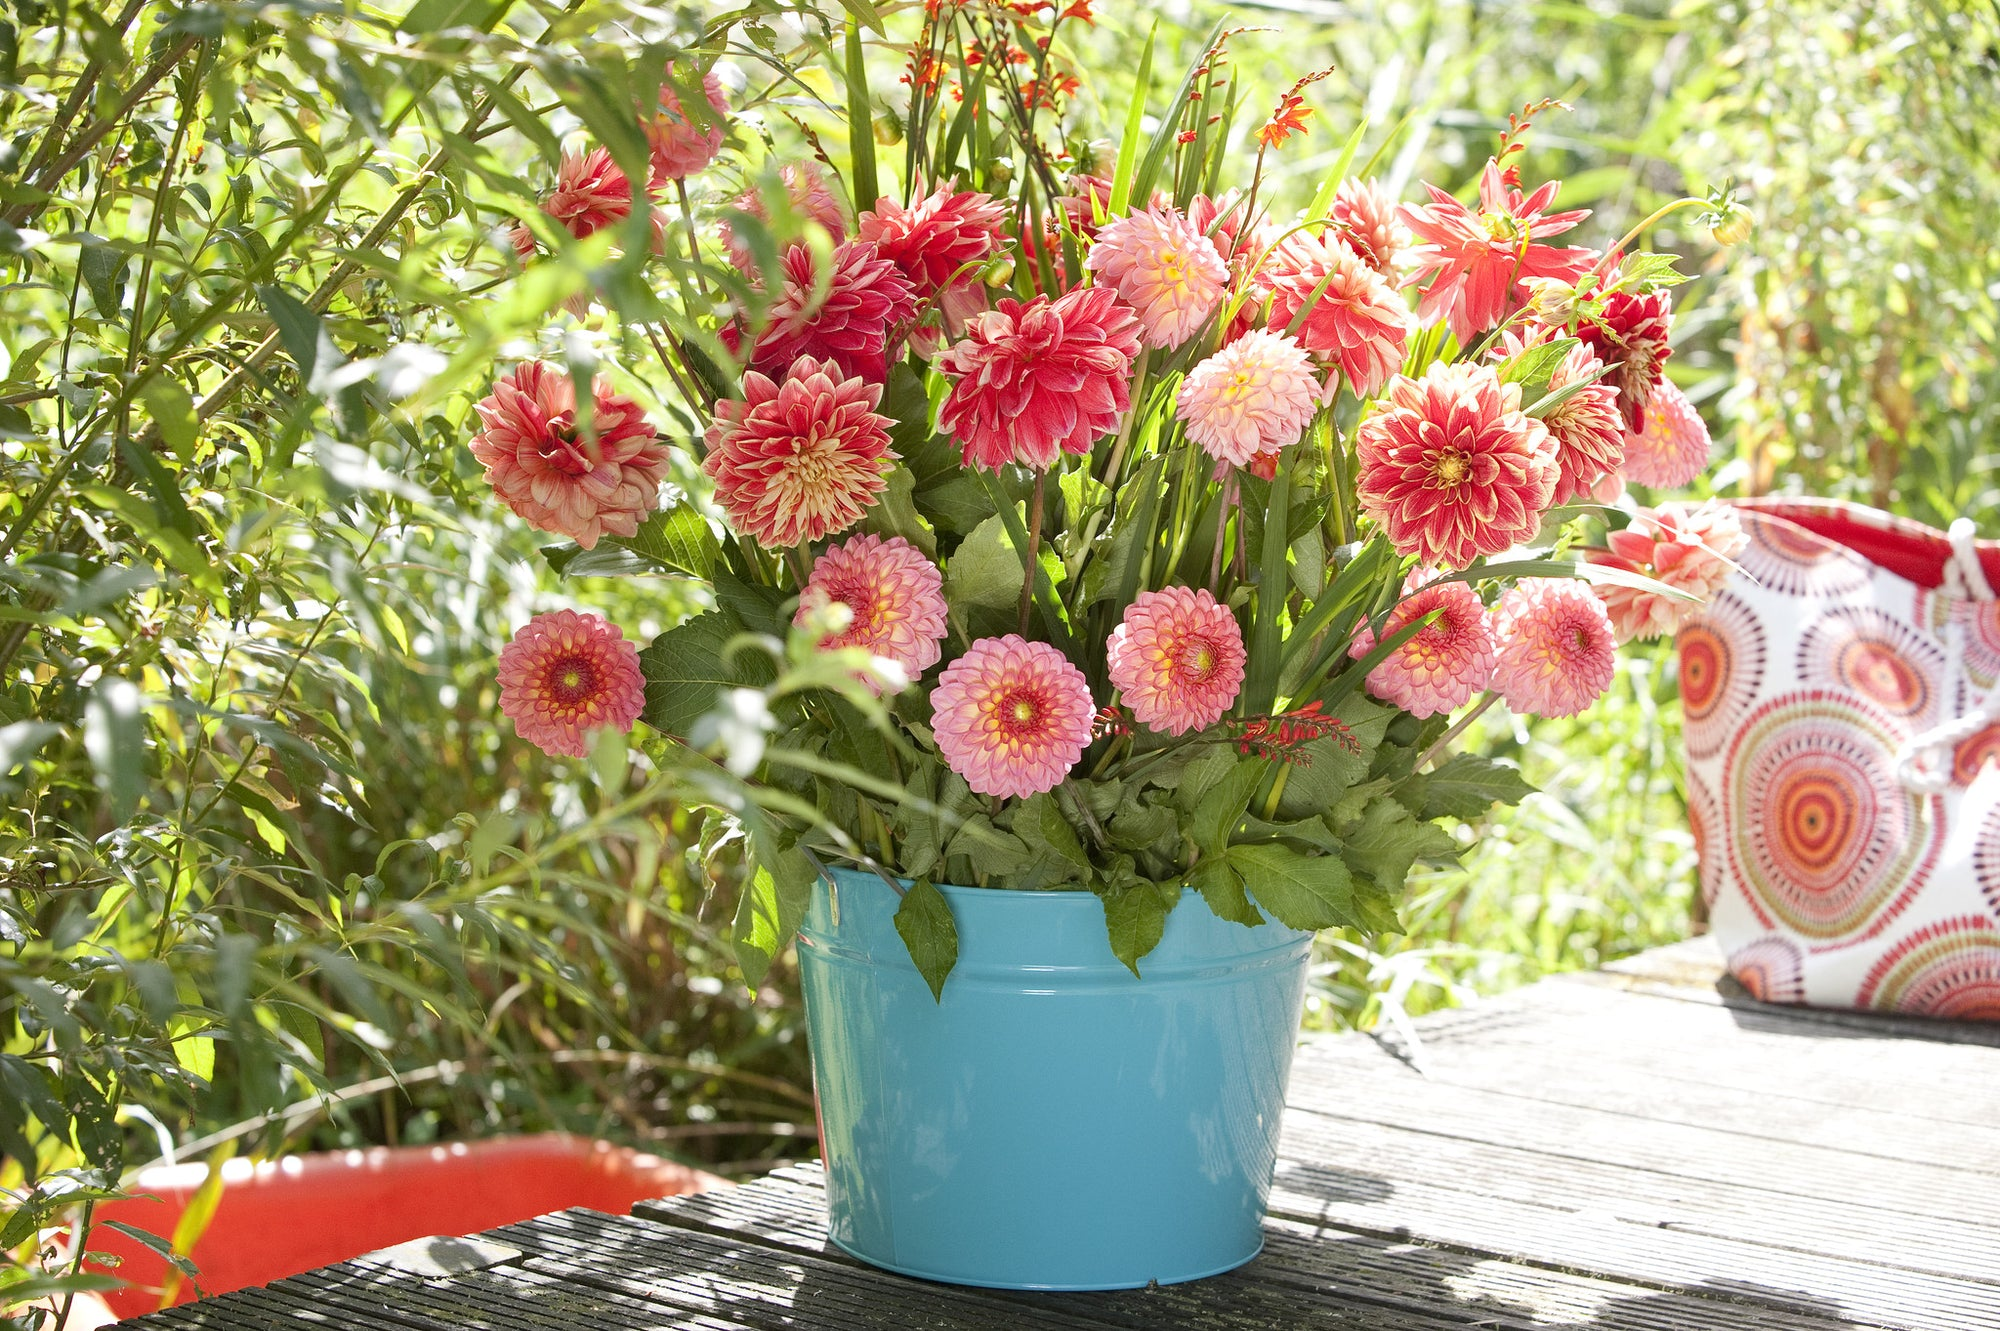 Be Sure to Plant Your Dahlias Soon